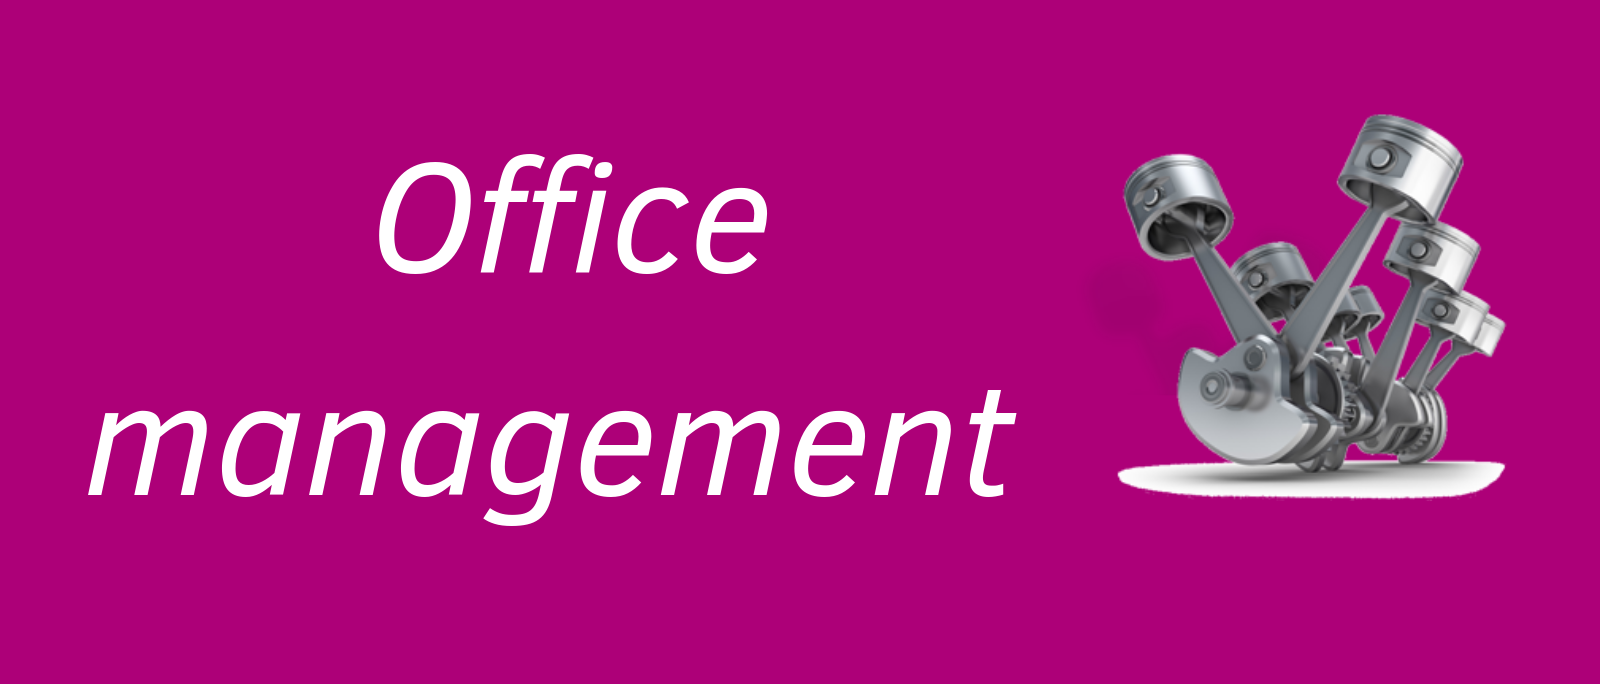 Officemanagement